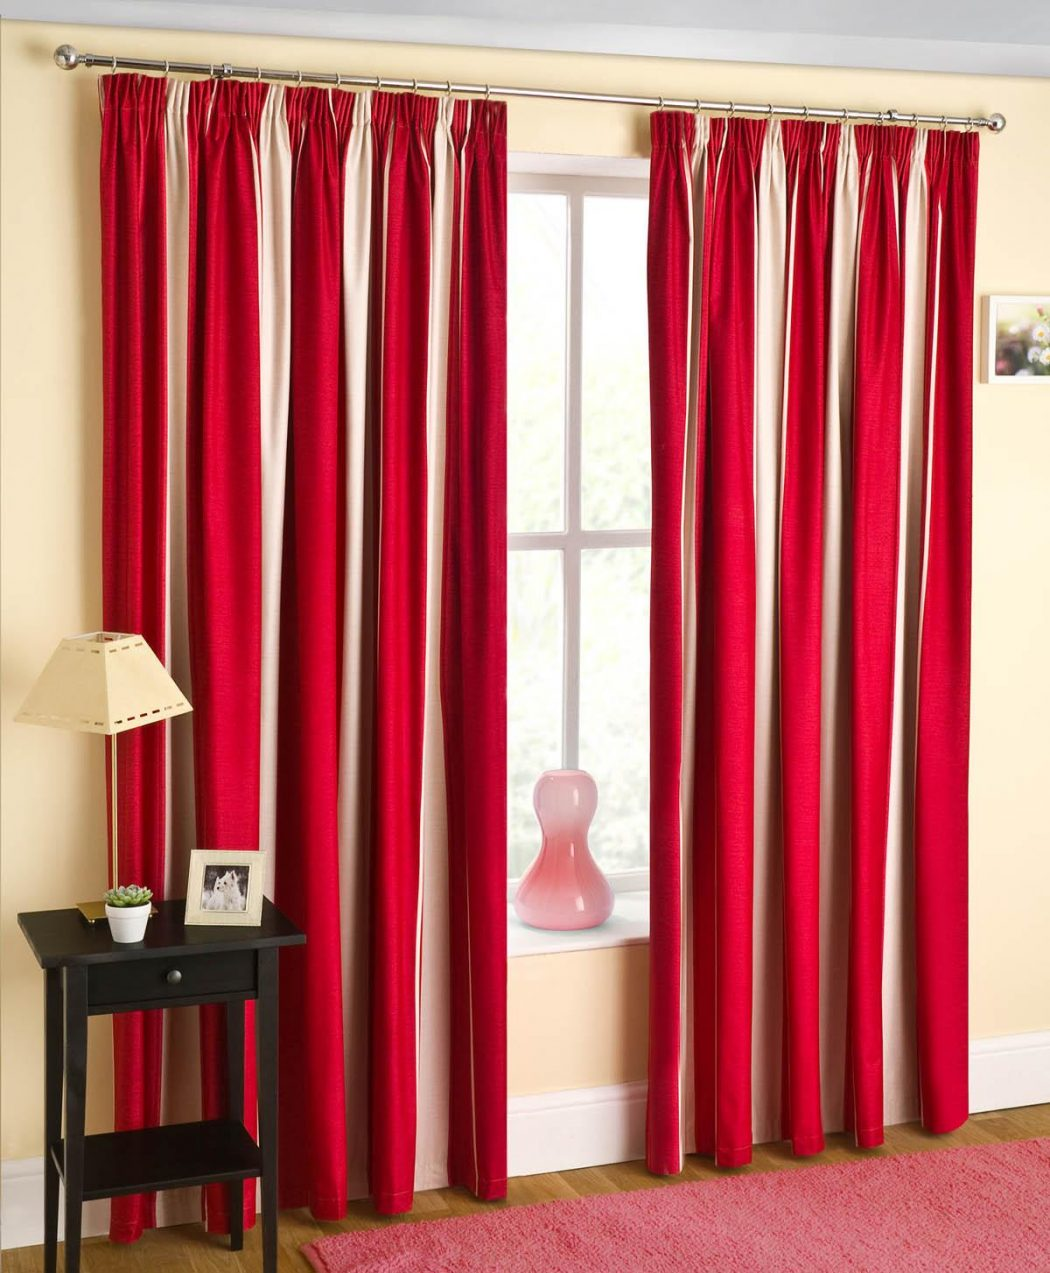 TWILIGHT-RED 20+ Hottest Curtain Designs for 2018